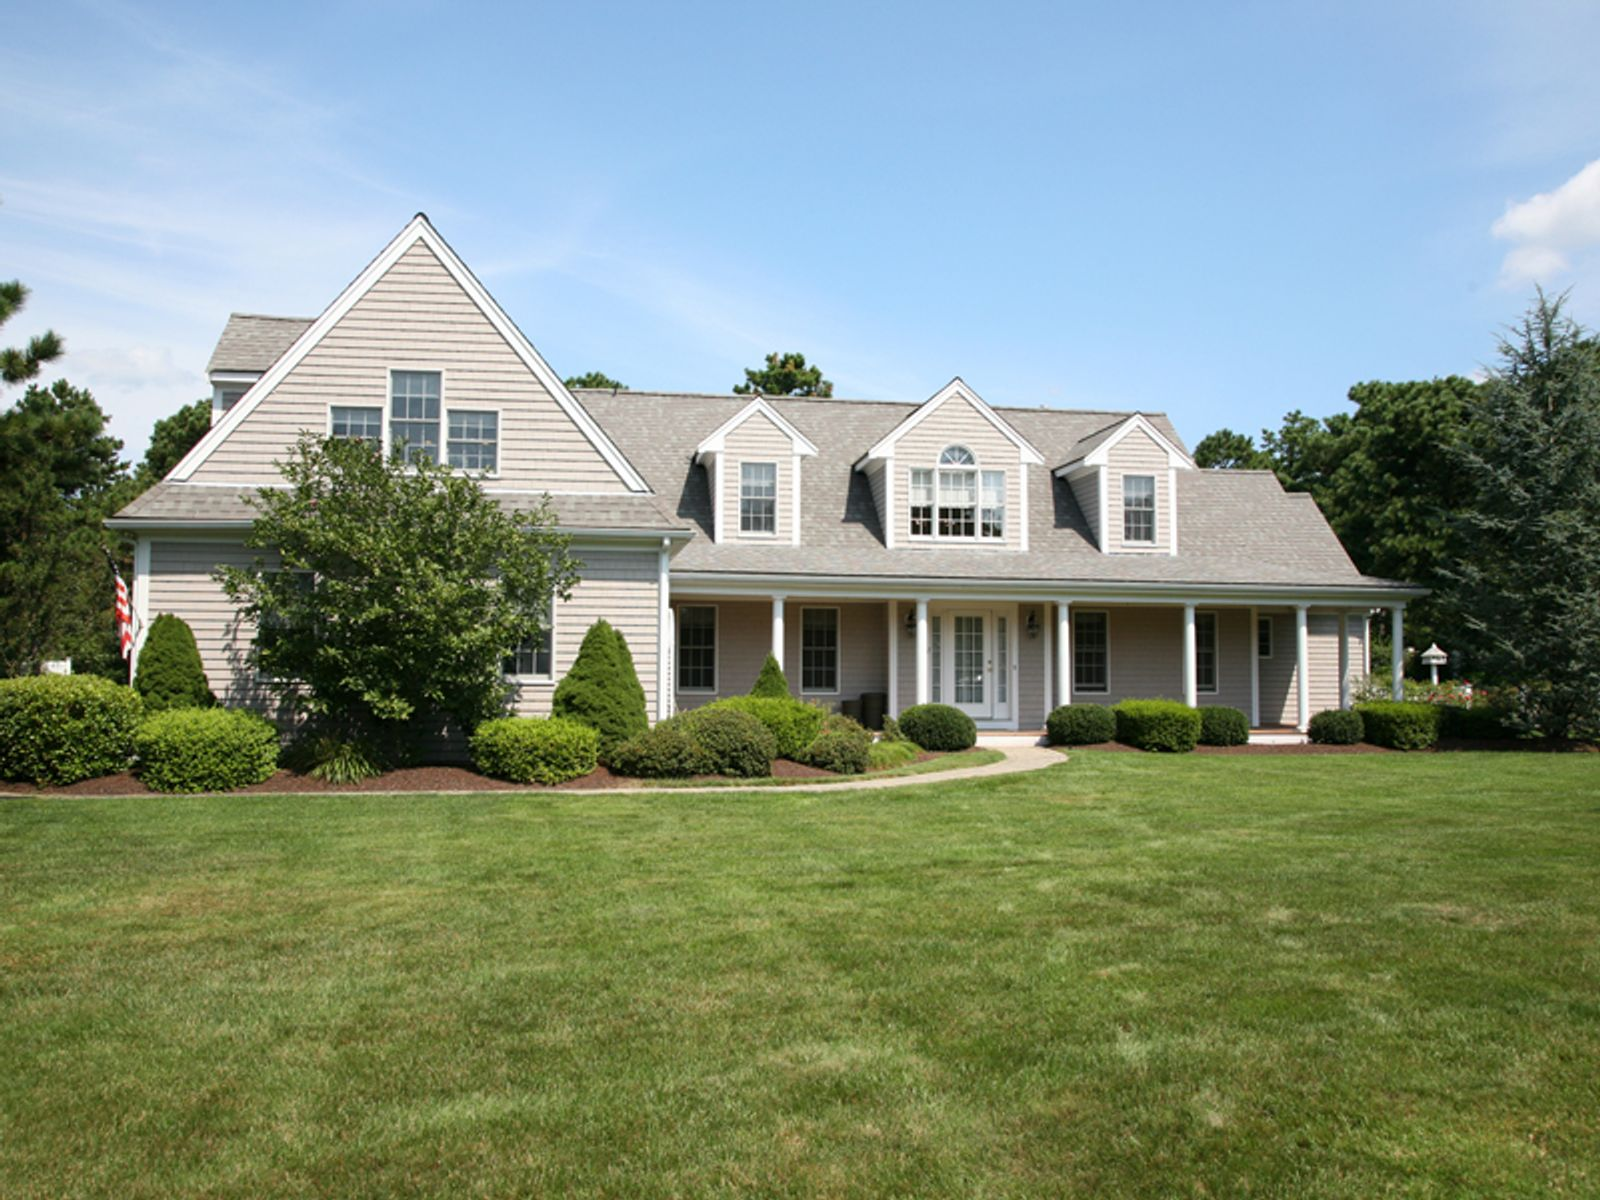 Custom Built Contemporary Cape, Mashpee MA Single Family Home - Cape Cod Real Estate